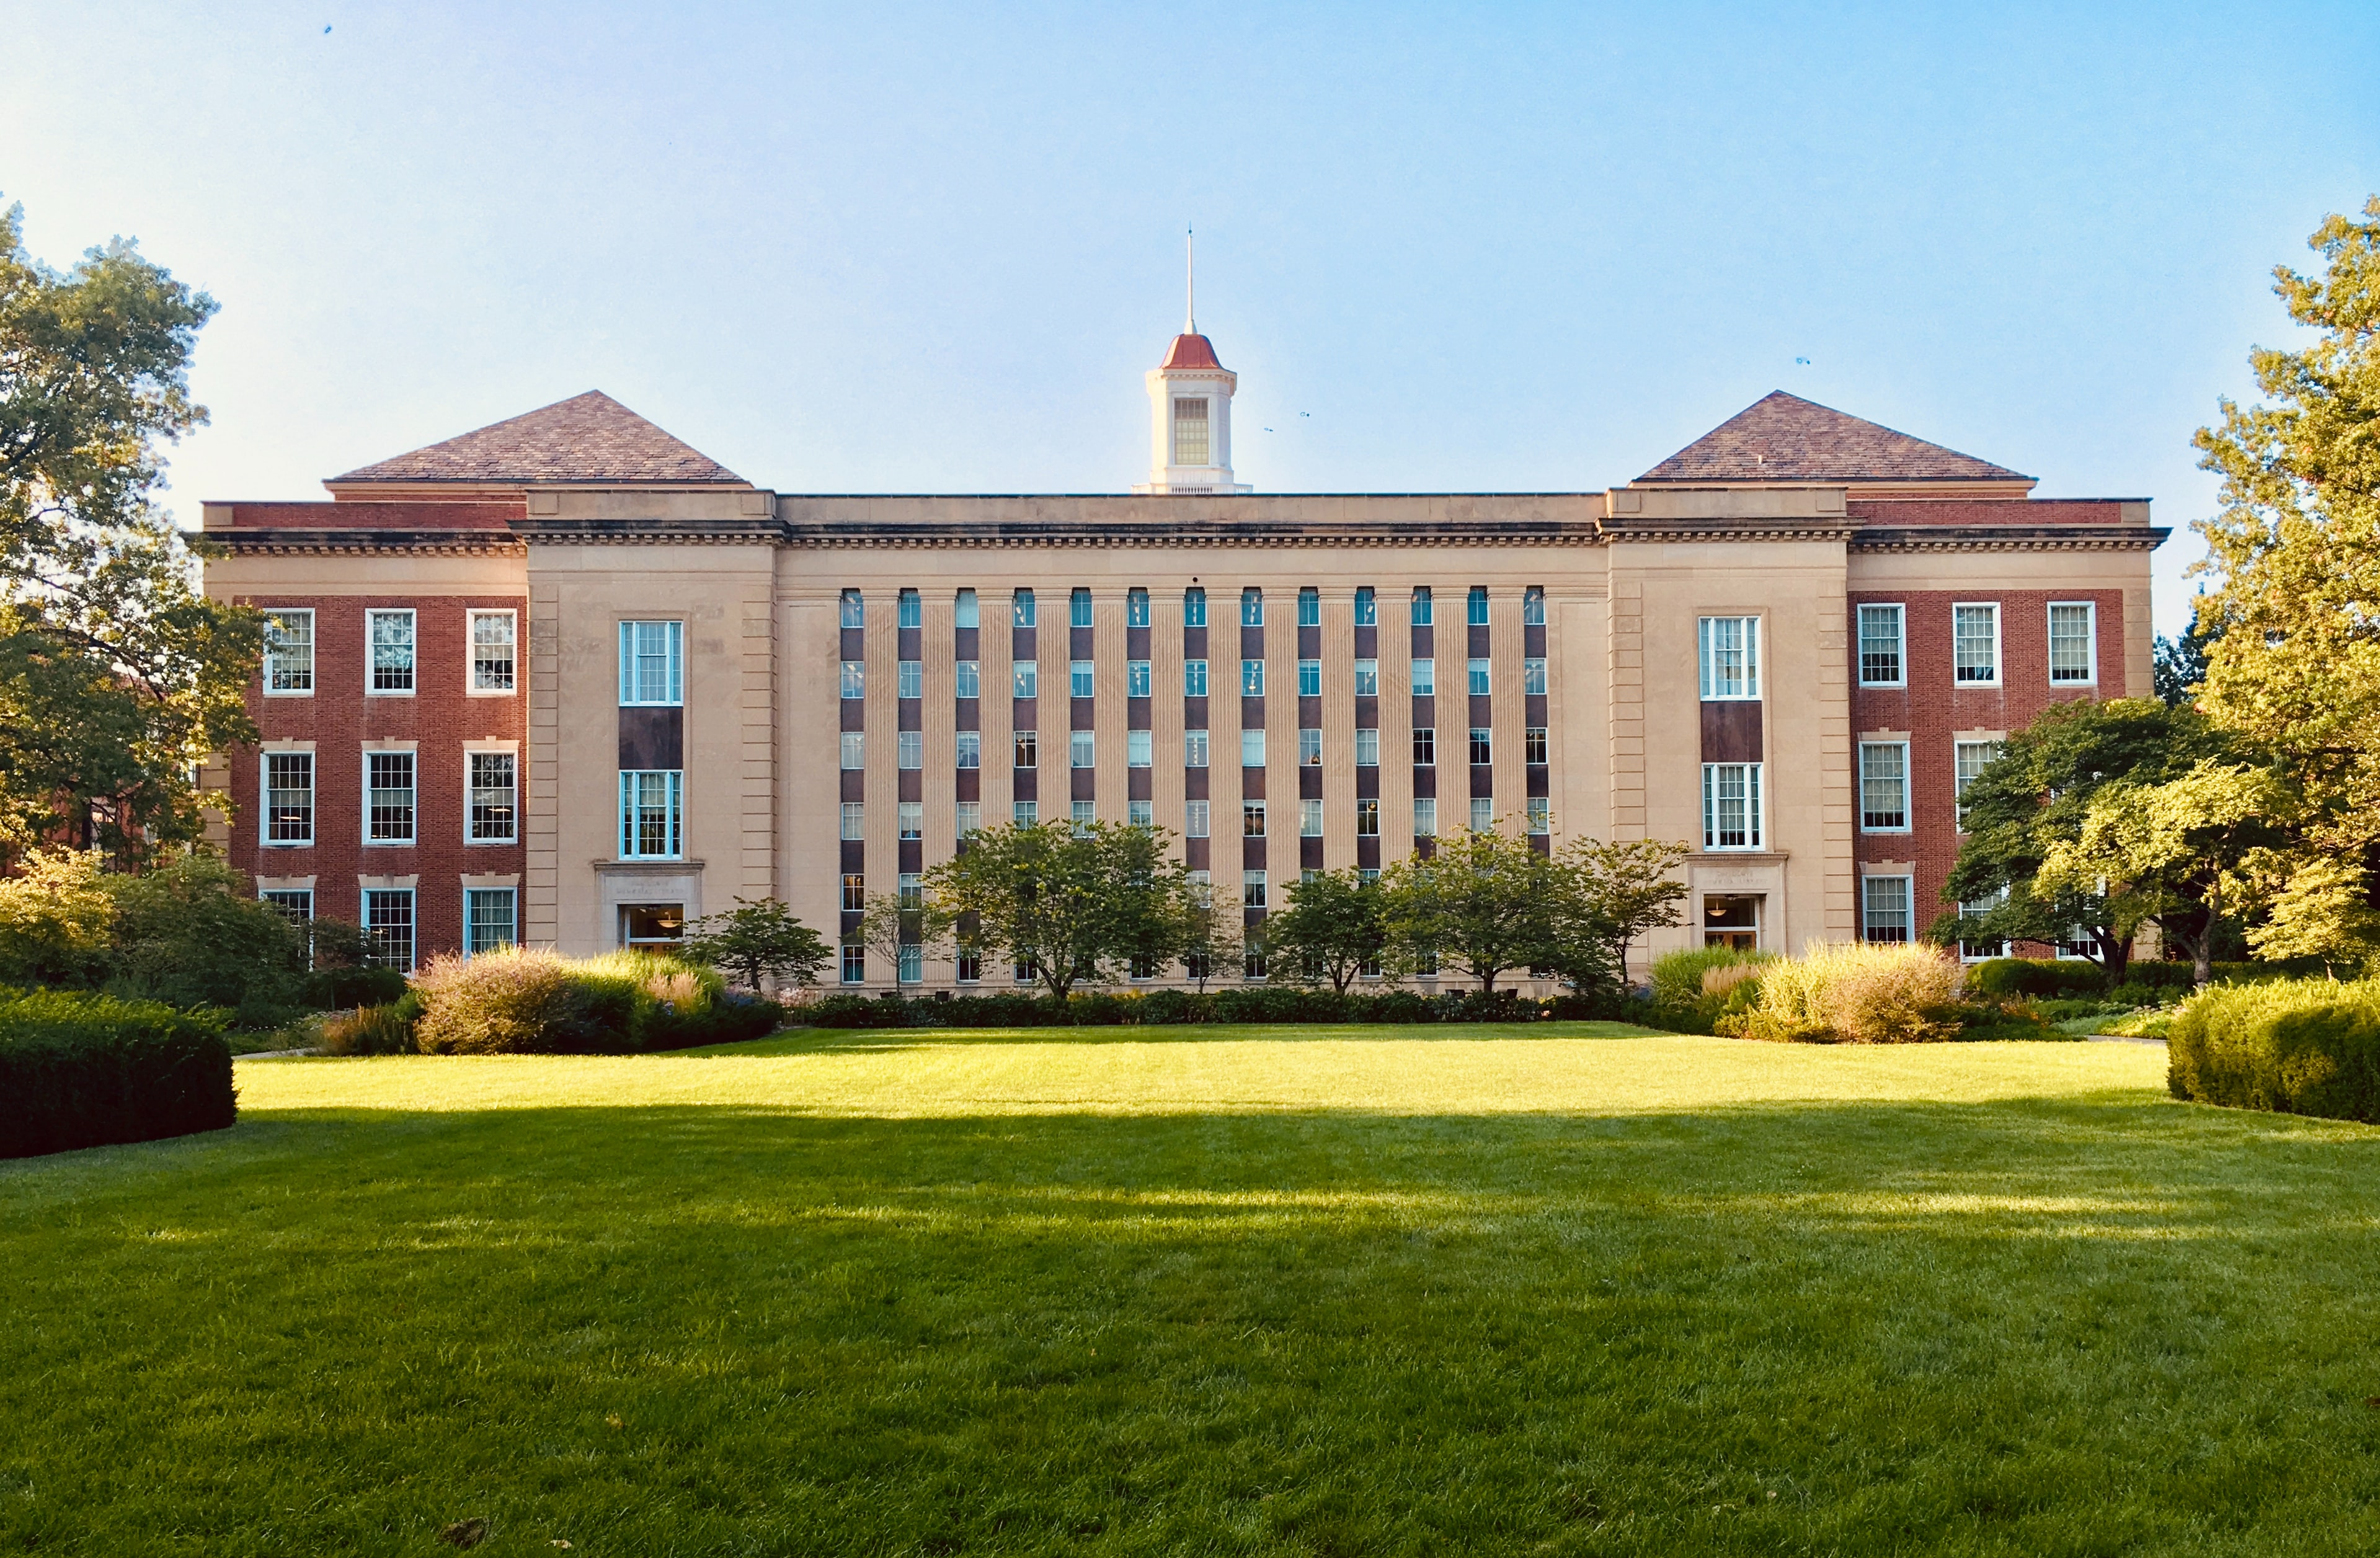 A task force has just released some college safety guidelines for safely reopening colleges and universities, but they might not be feasible for some schools. The task force chair shares some college safety tips to help higher leaders comply with the recommendations.